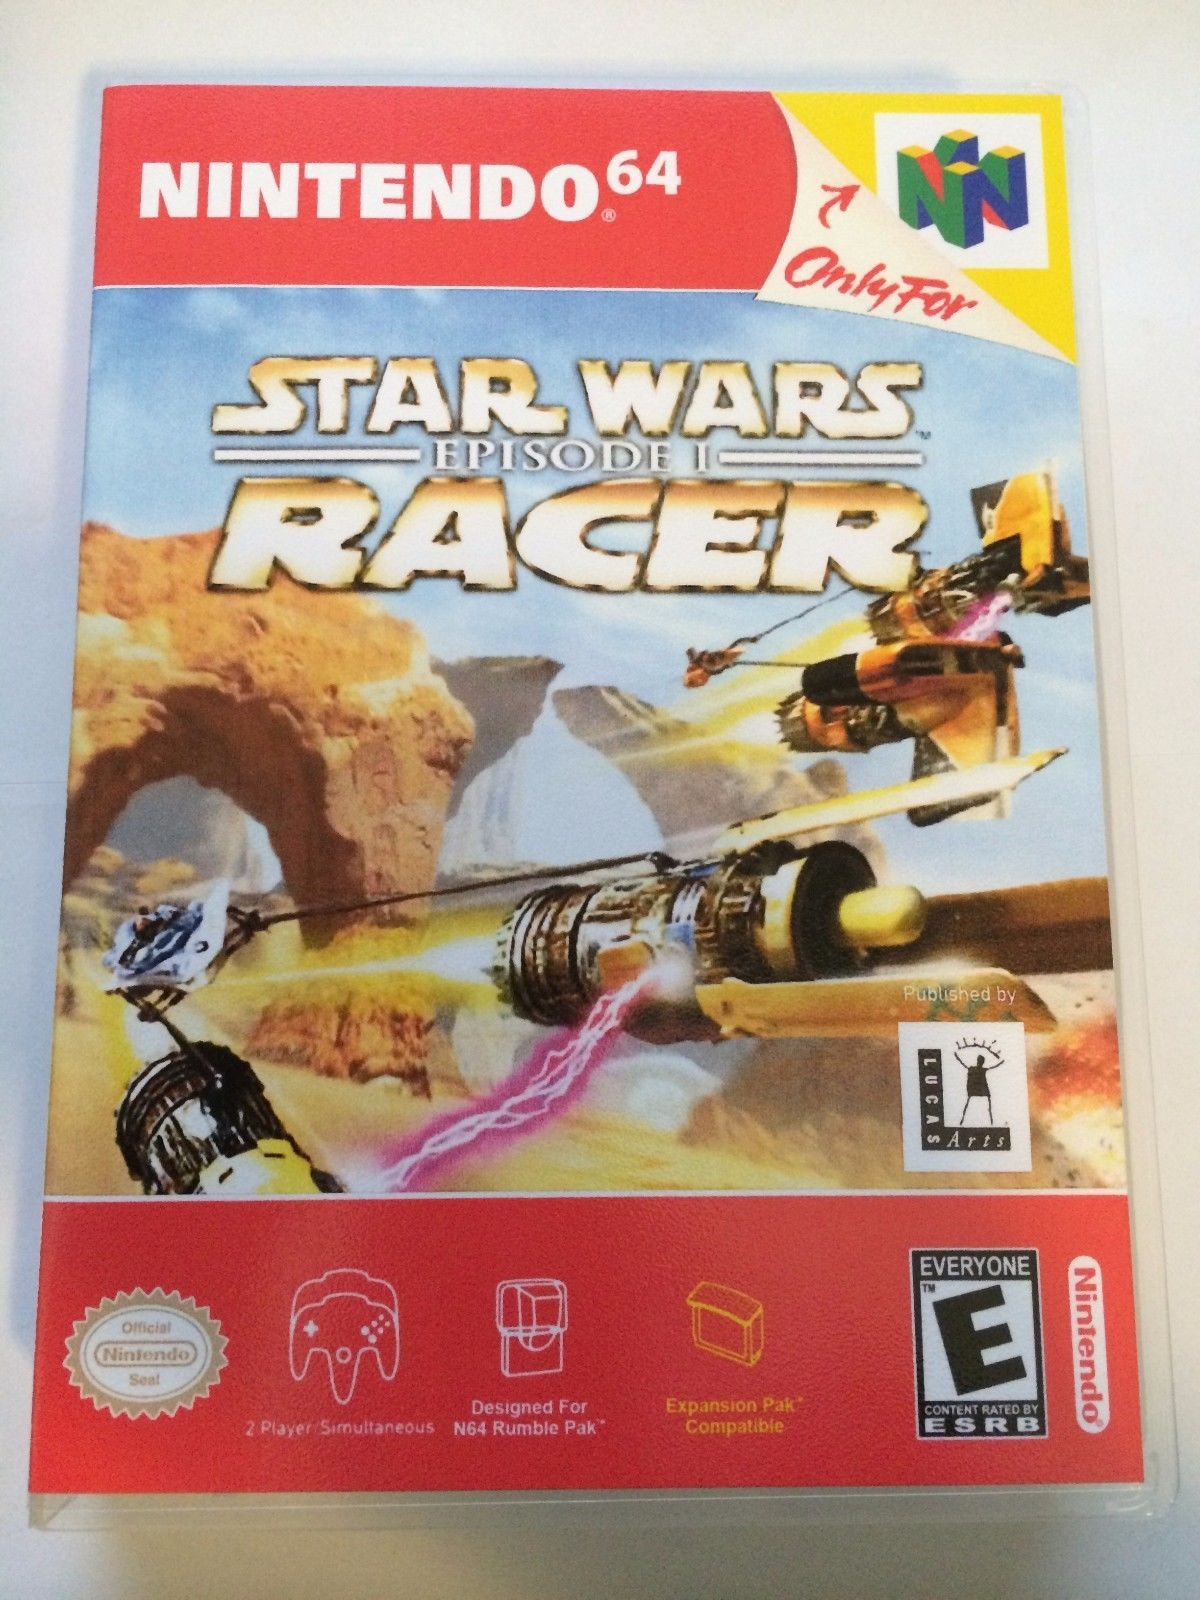 Star Wars Episode 1 Racer - Nintendo 64 - Replacement Case - No Game